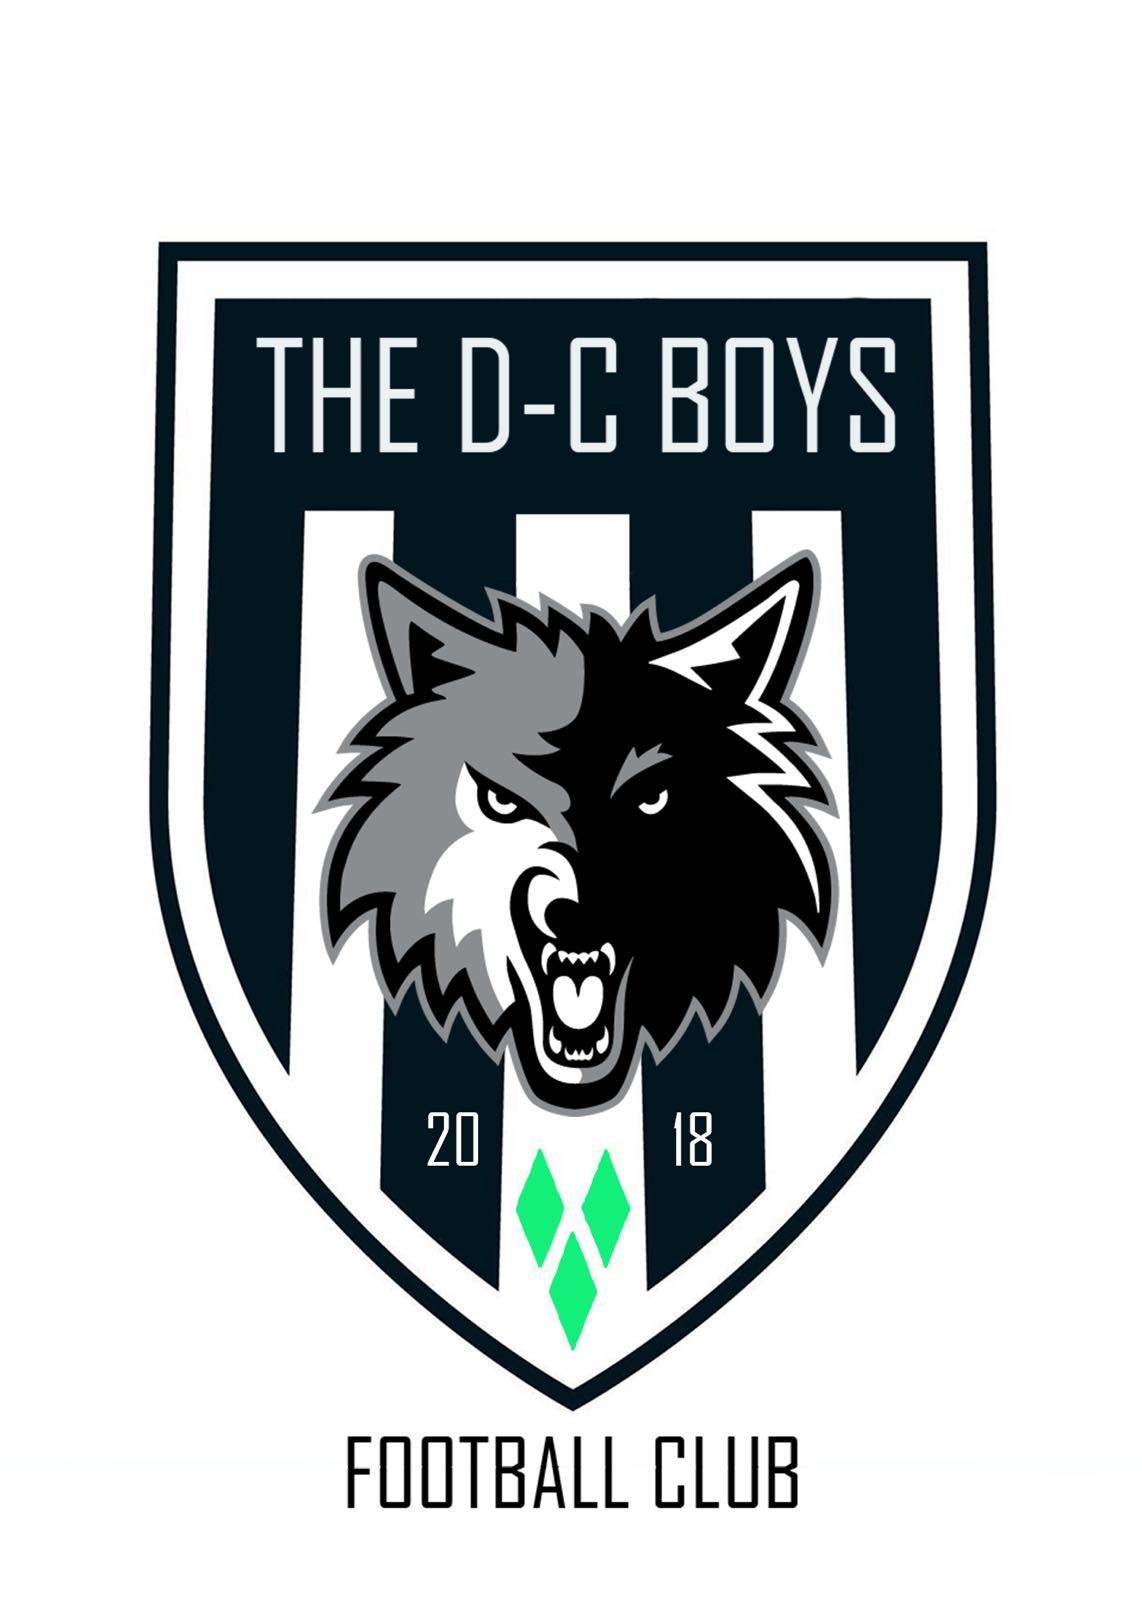 FC The D-C Boys